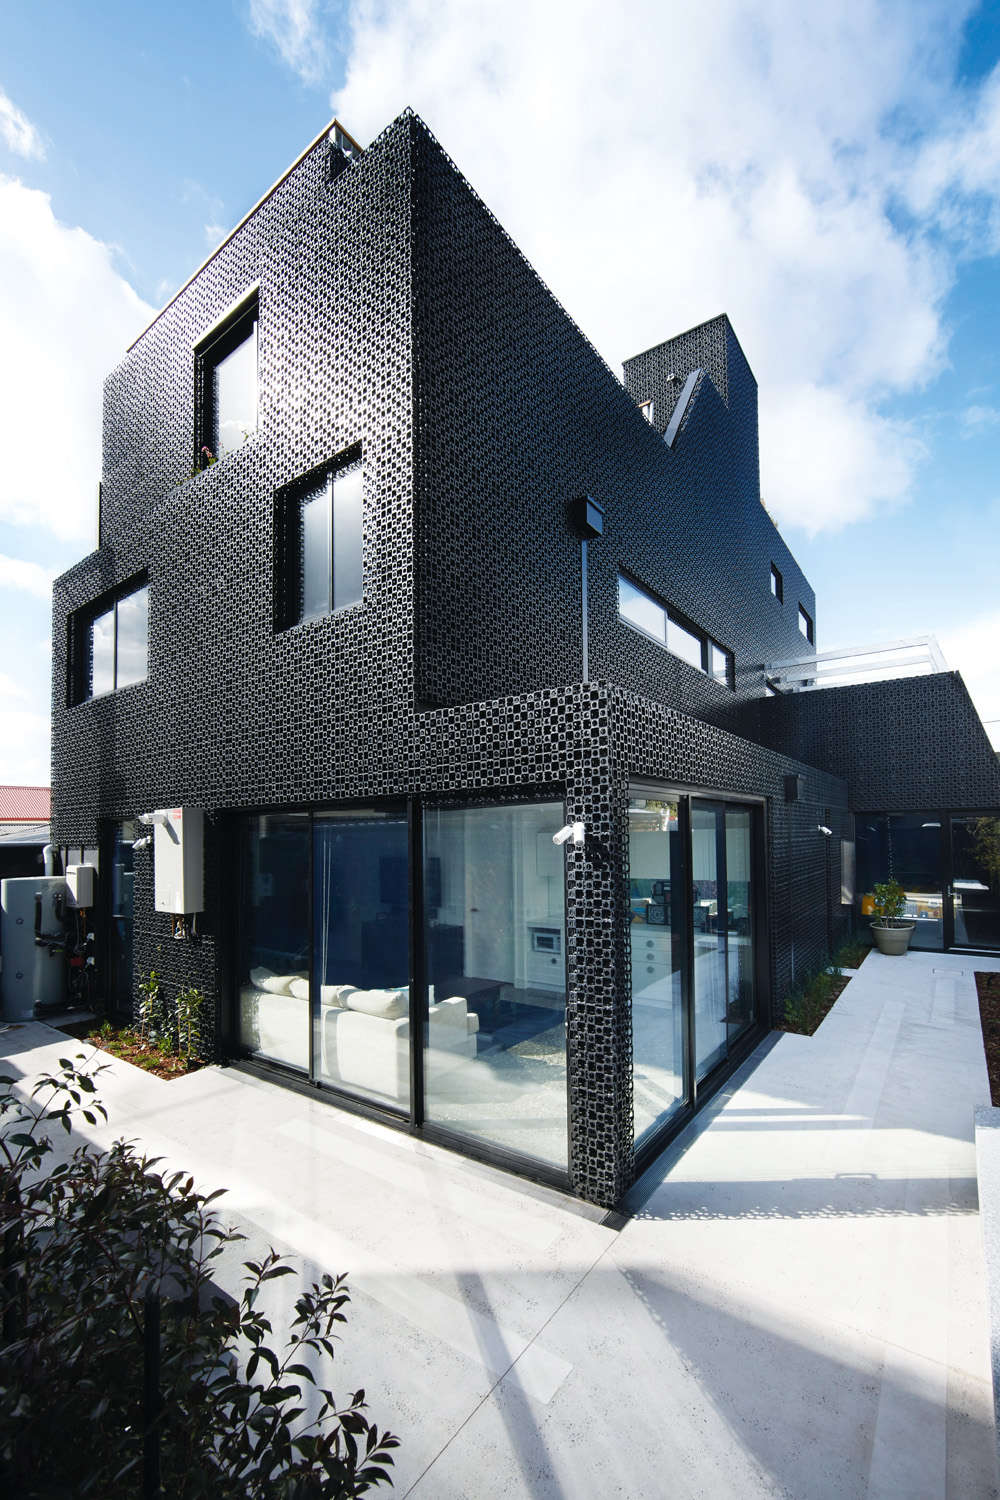 Grand designs australia back in black completehome for Grand home designs